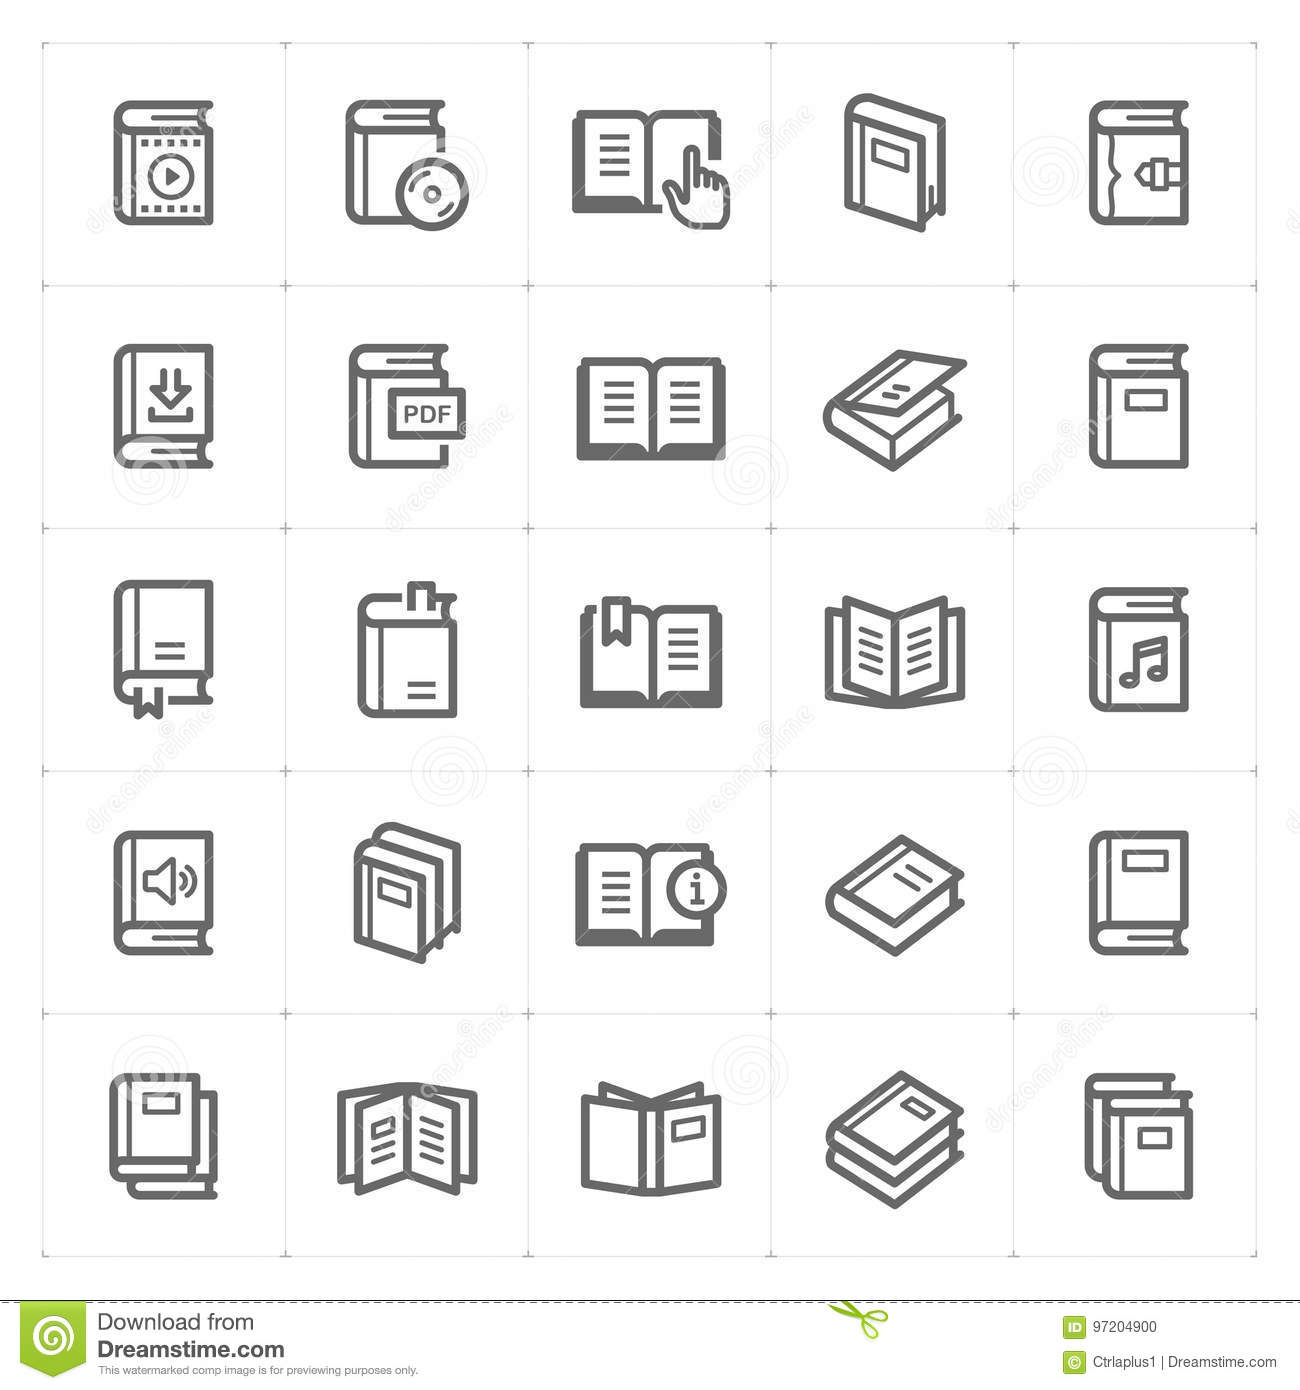 Icon set - book outline stroke